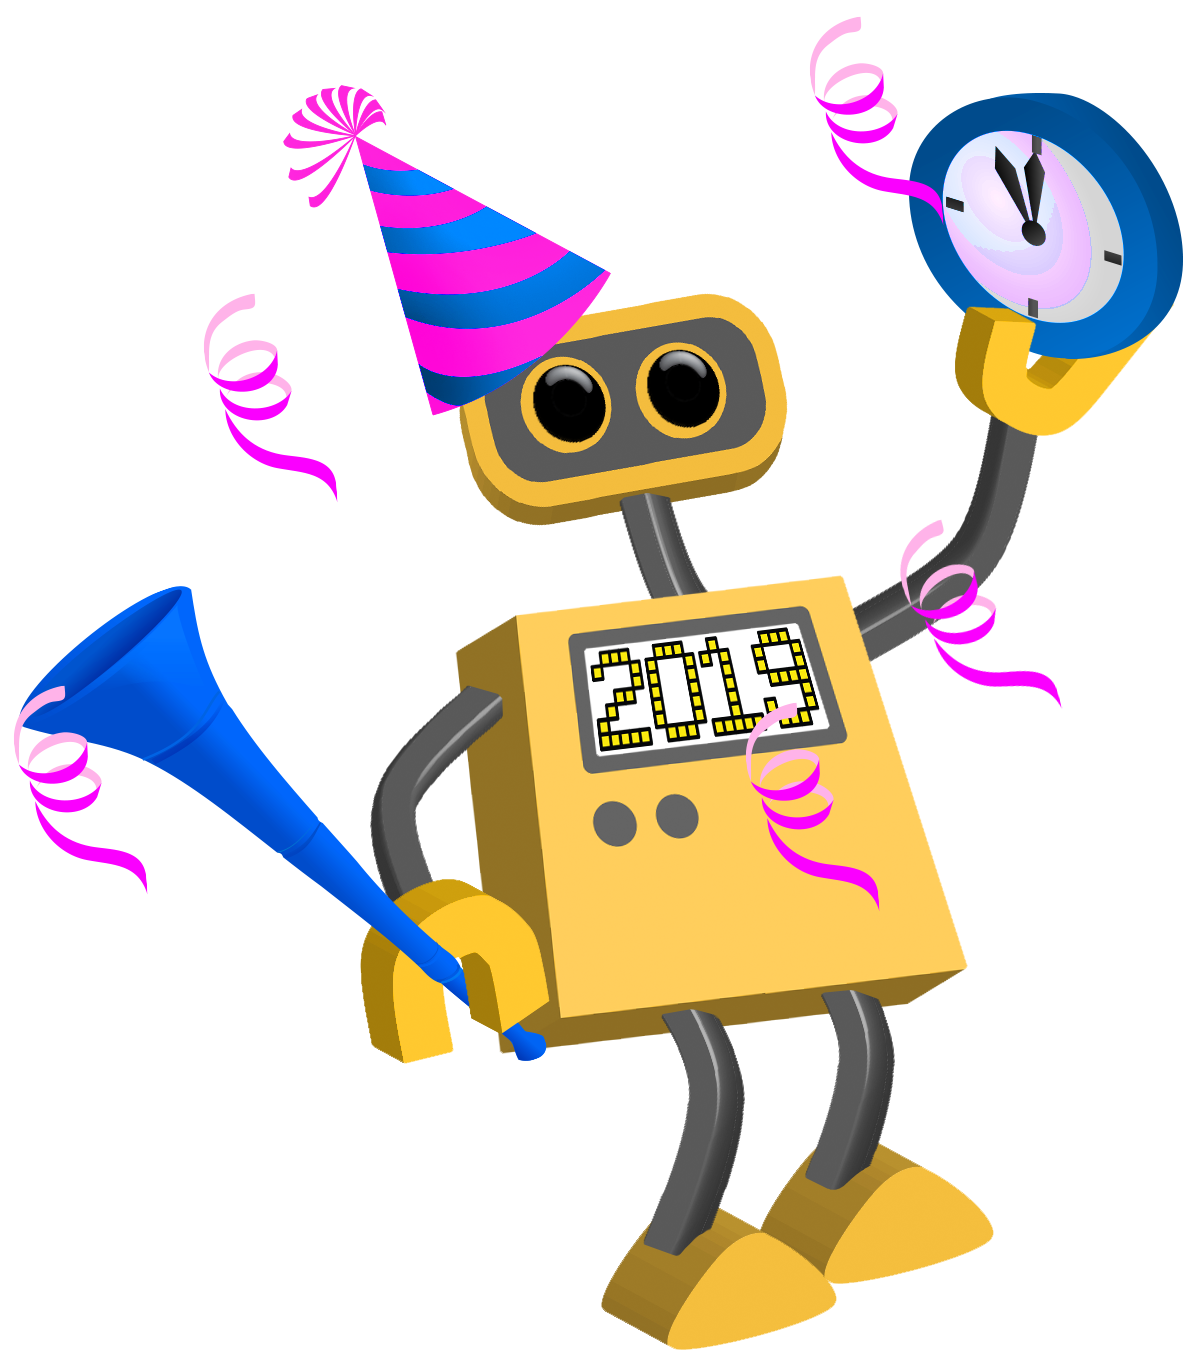 2019 Happy New Year Robots, Celebare, Greetings